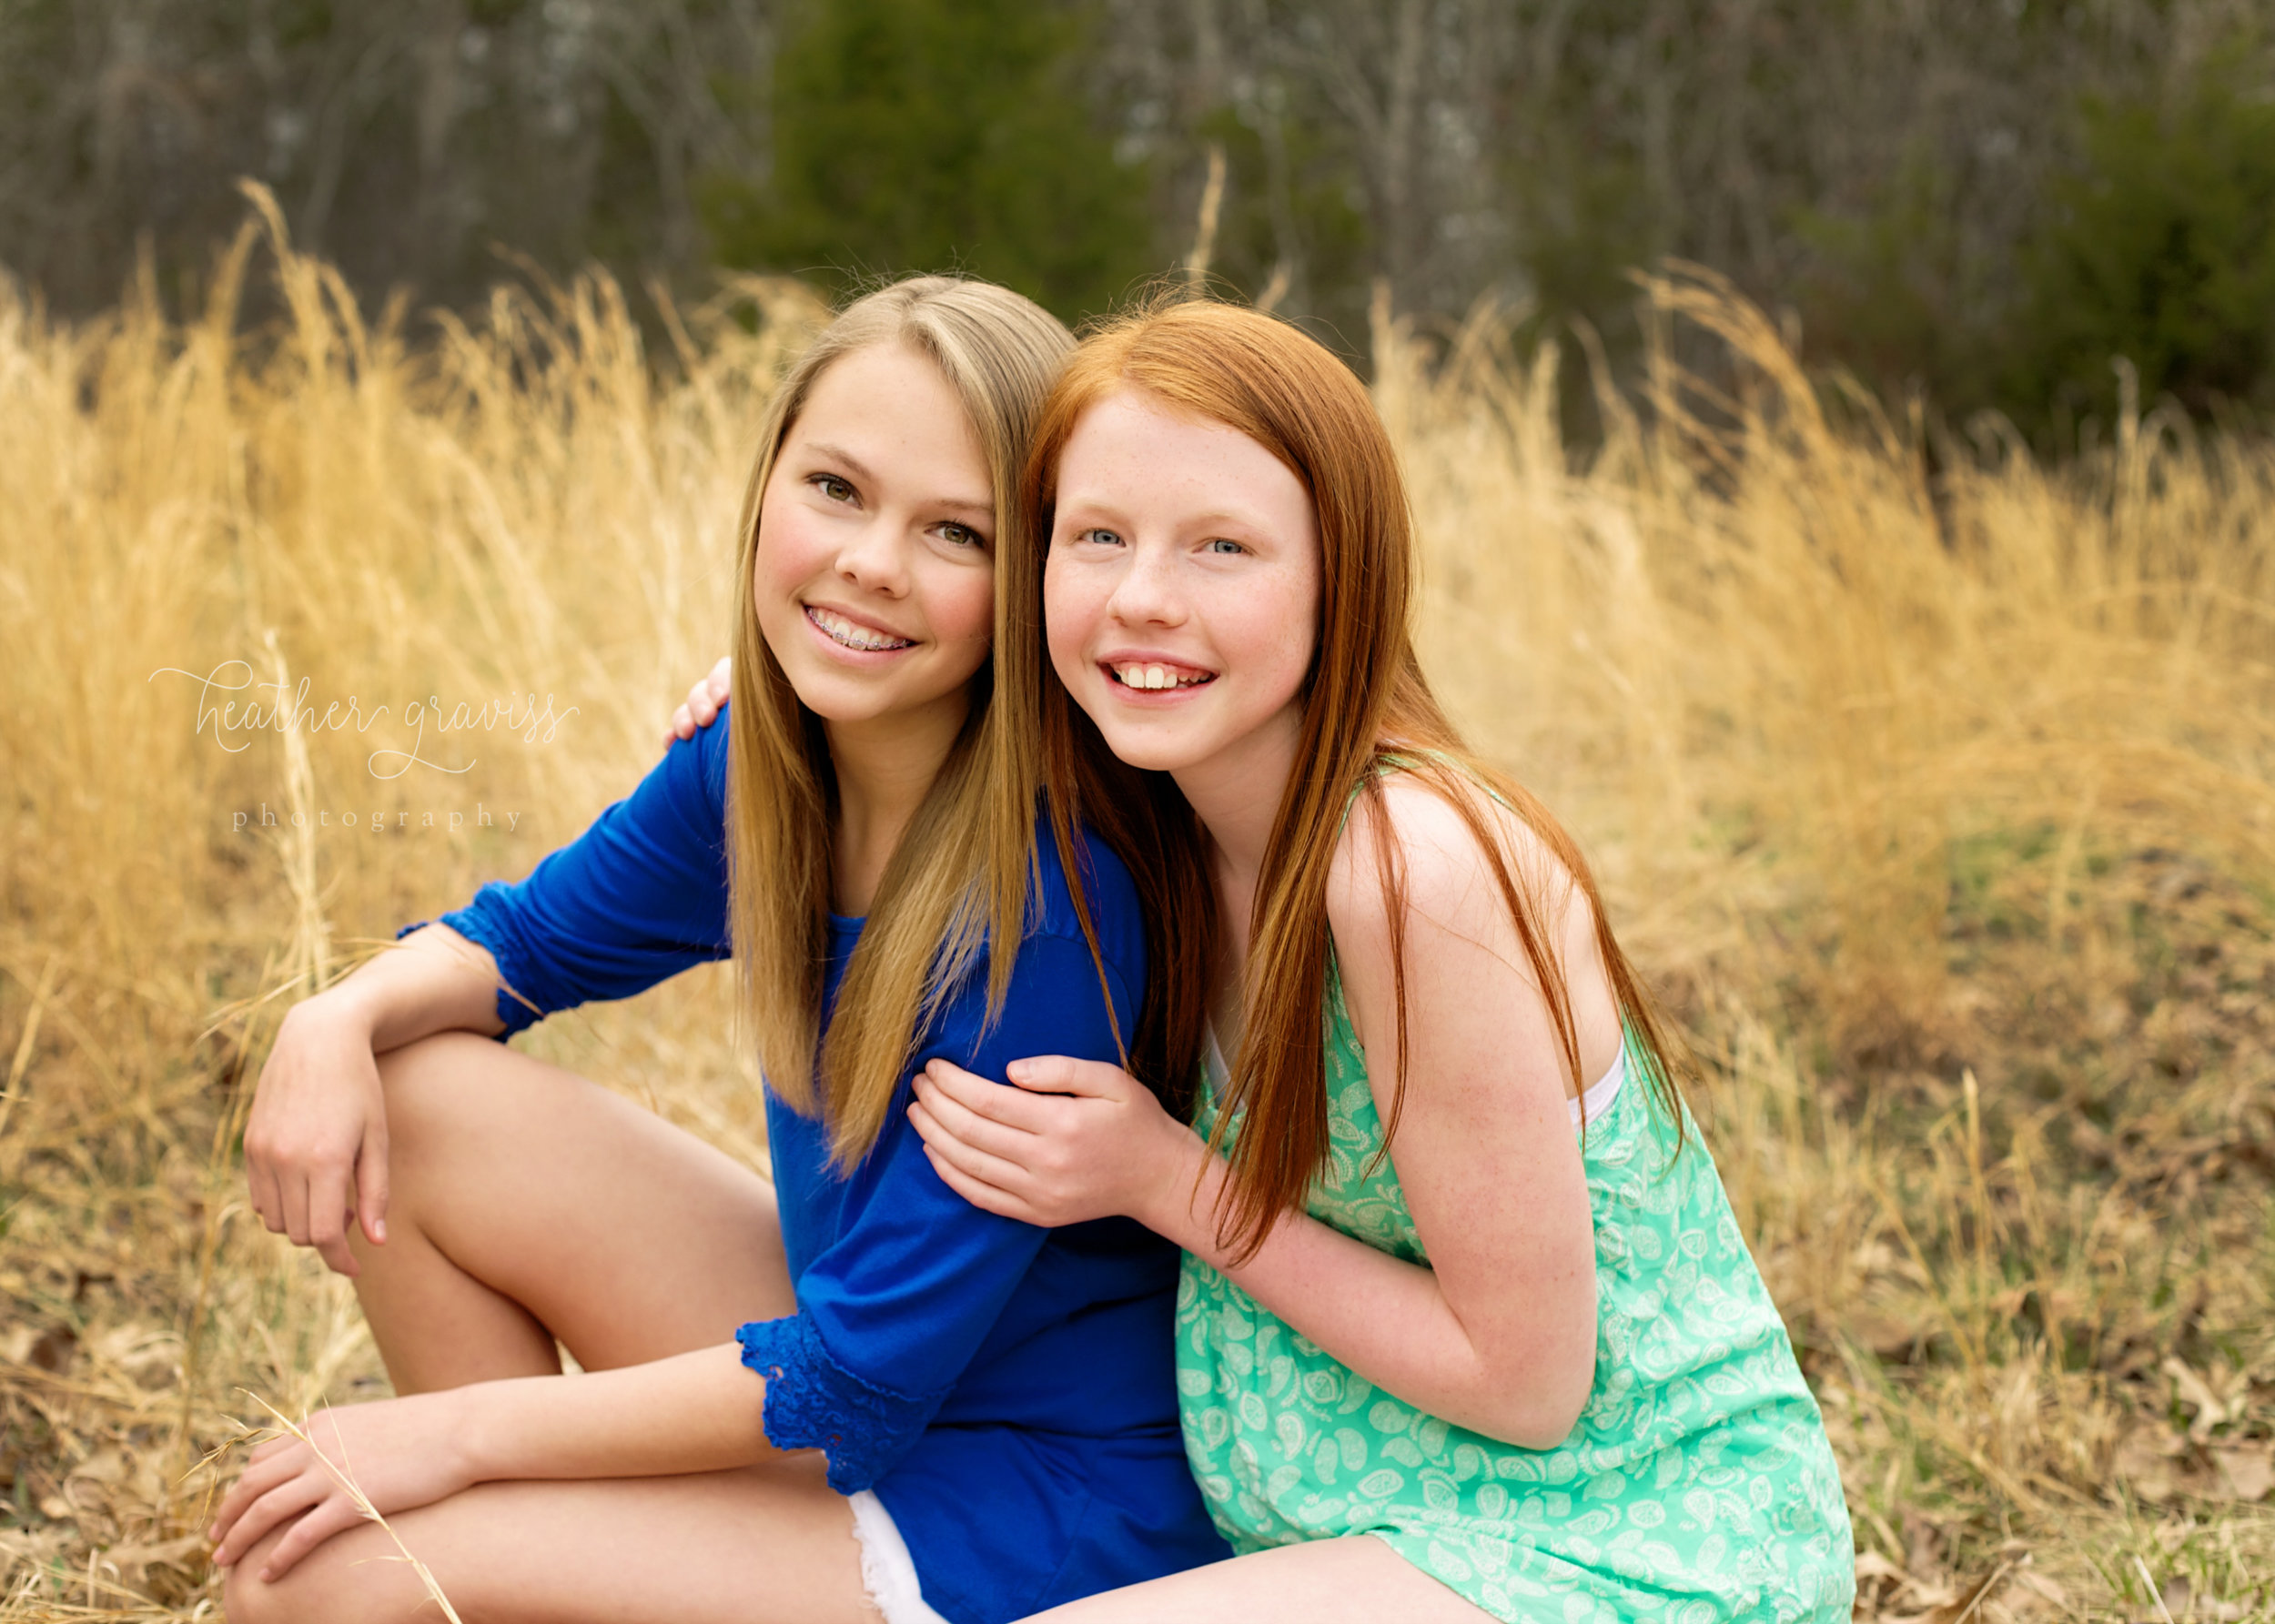 nashville tn photography spring pictures 013.jpg